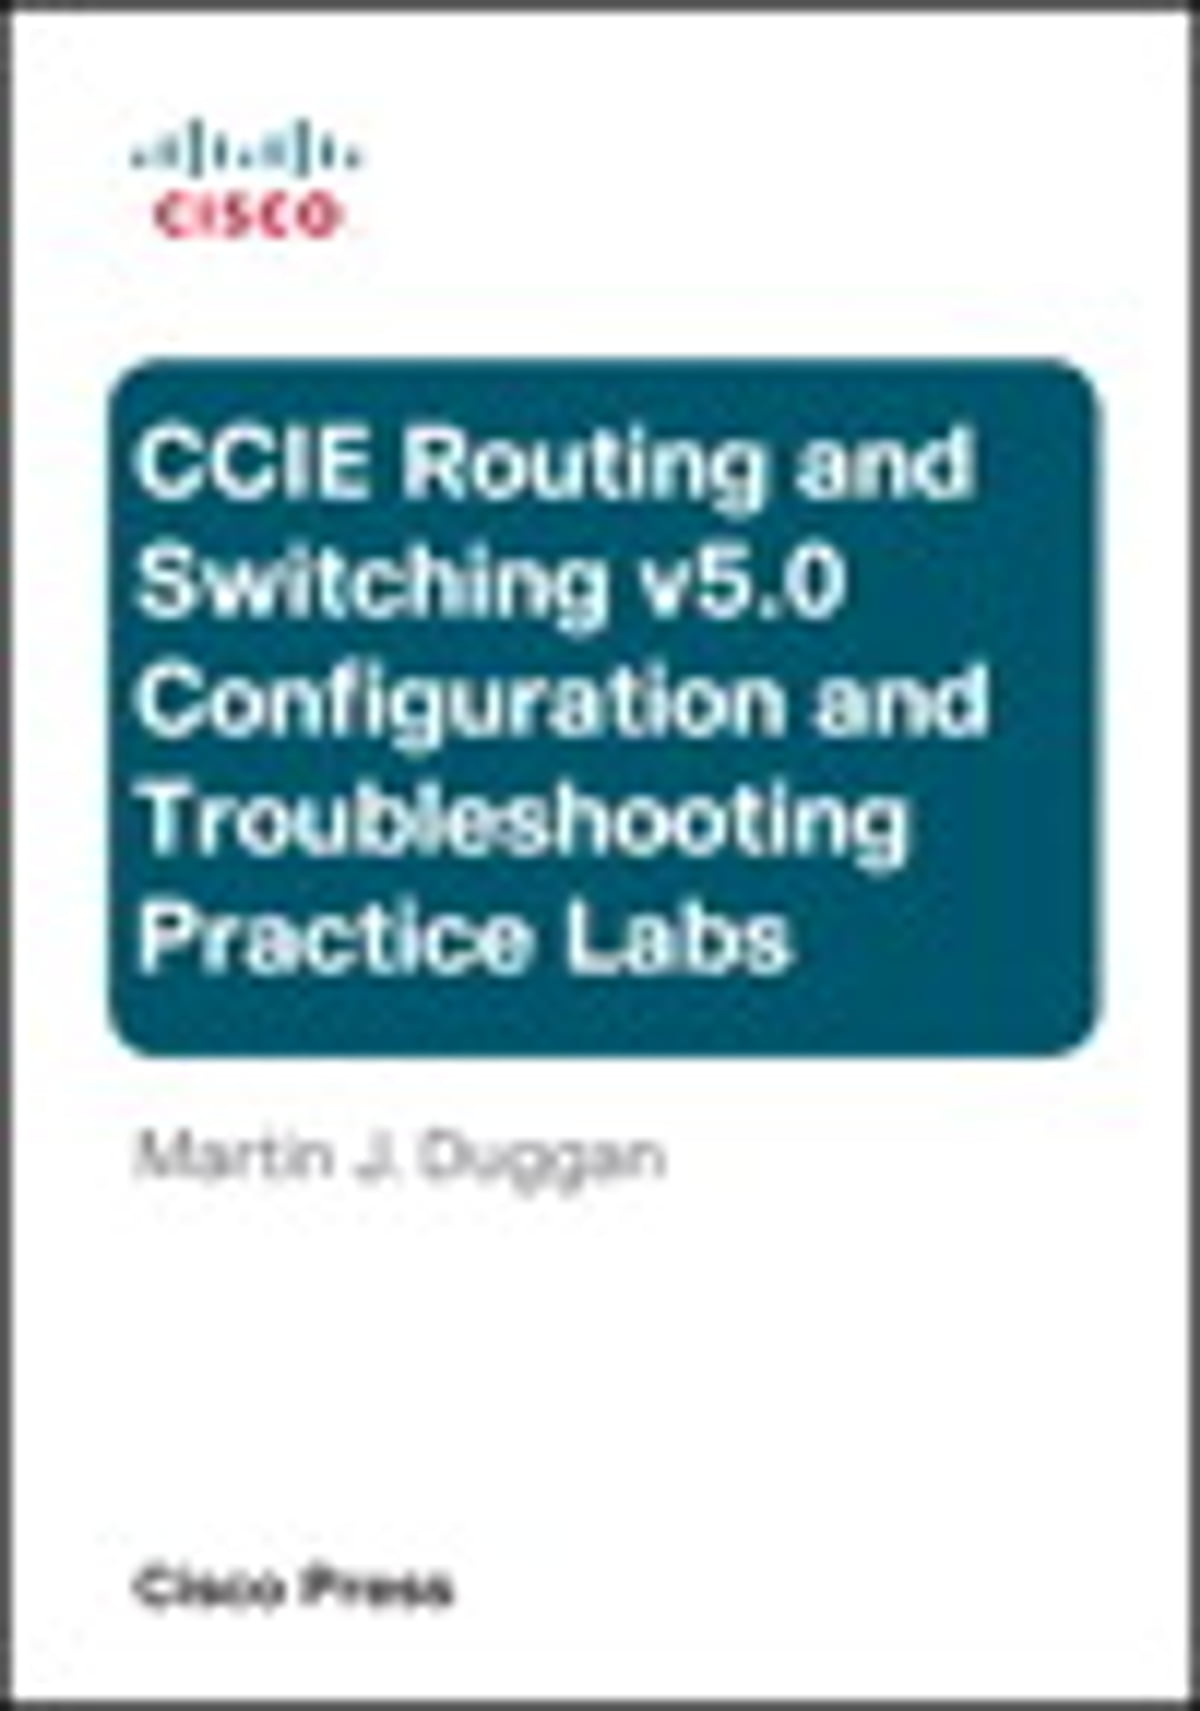 Cisco Ccie Routing And Switching V50 Configuration And Troubleshooting  Practice Labs Bundle Ebook By Martin Duggan  9780133787214  Rakuten Kobo